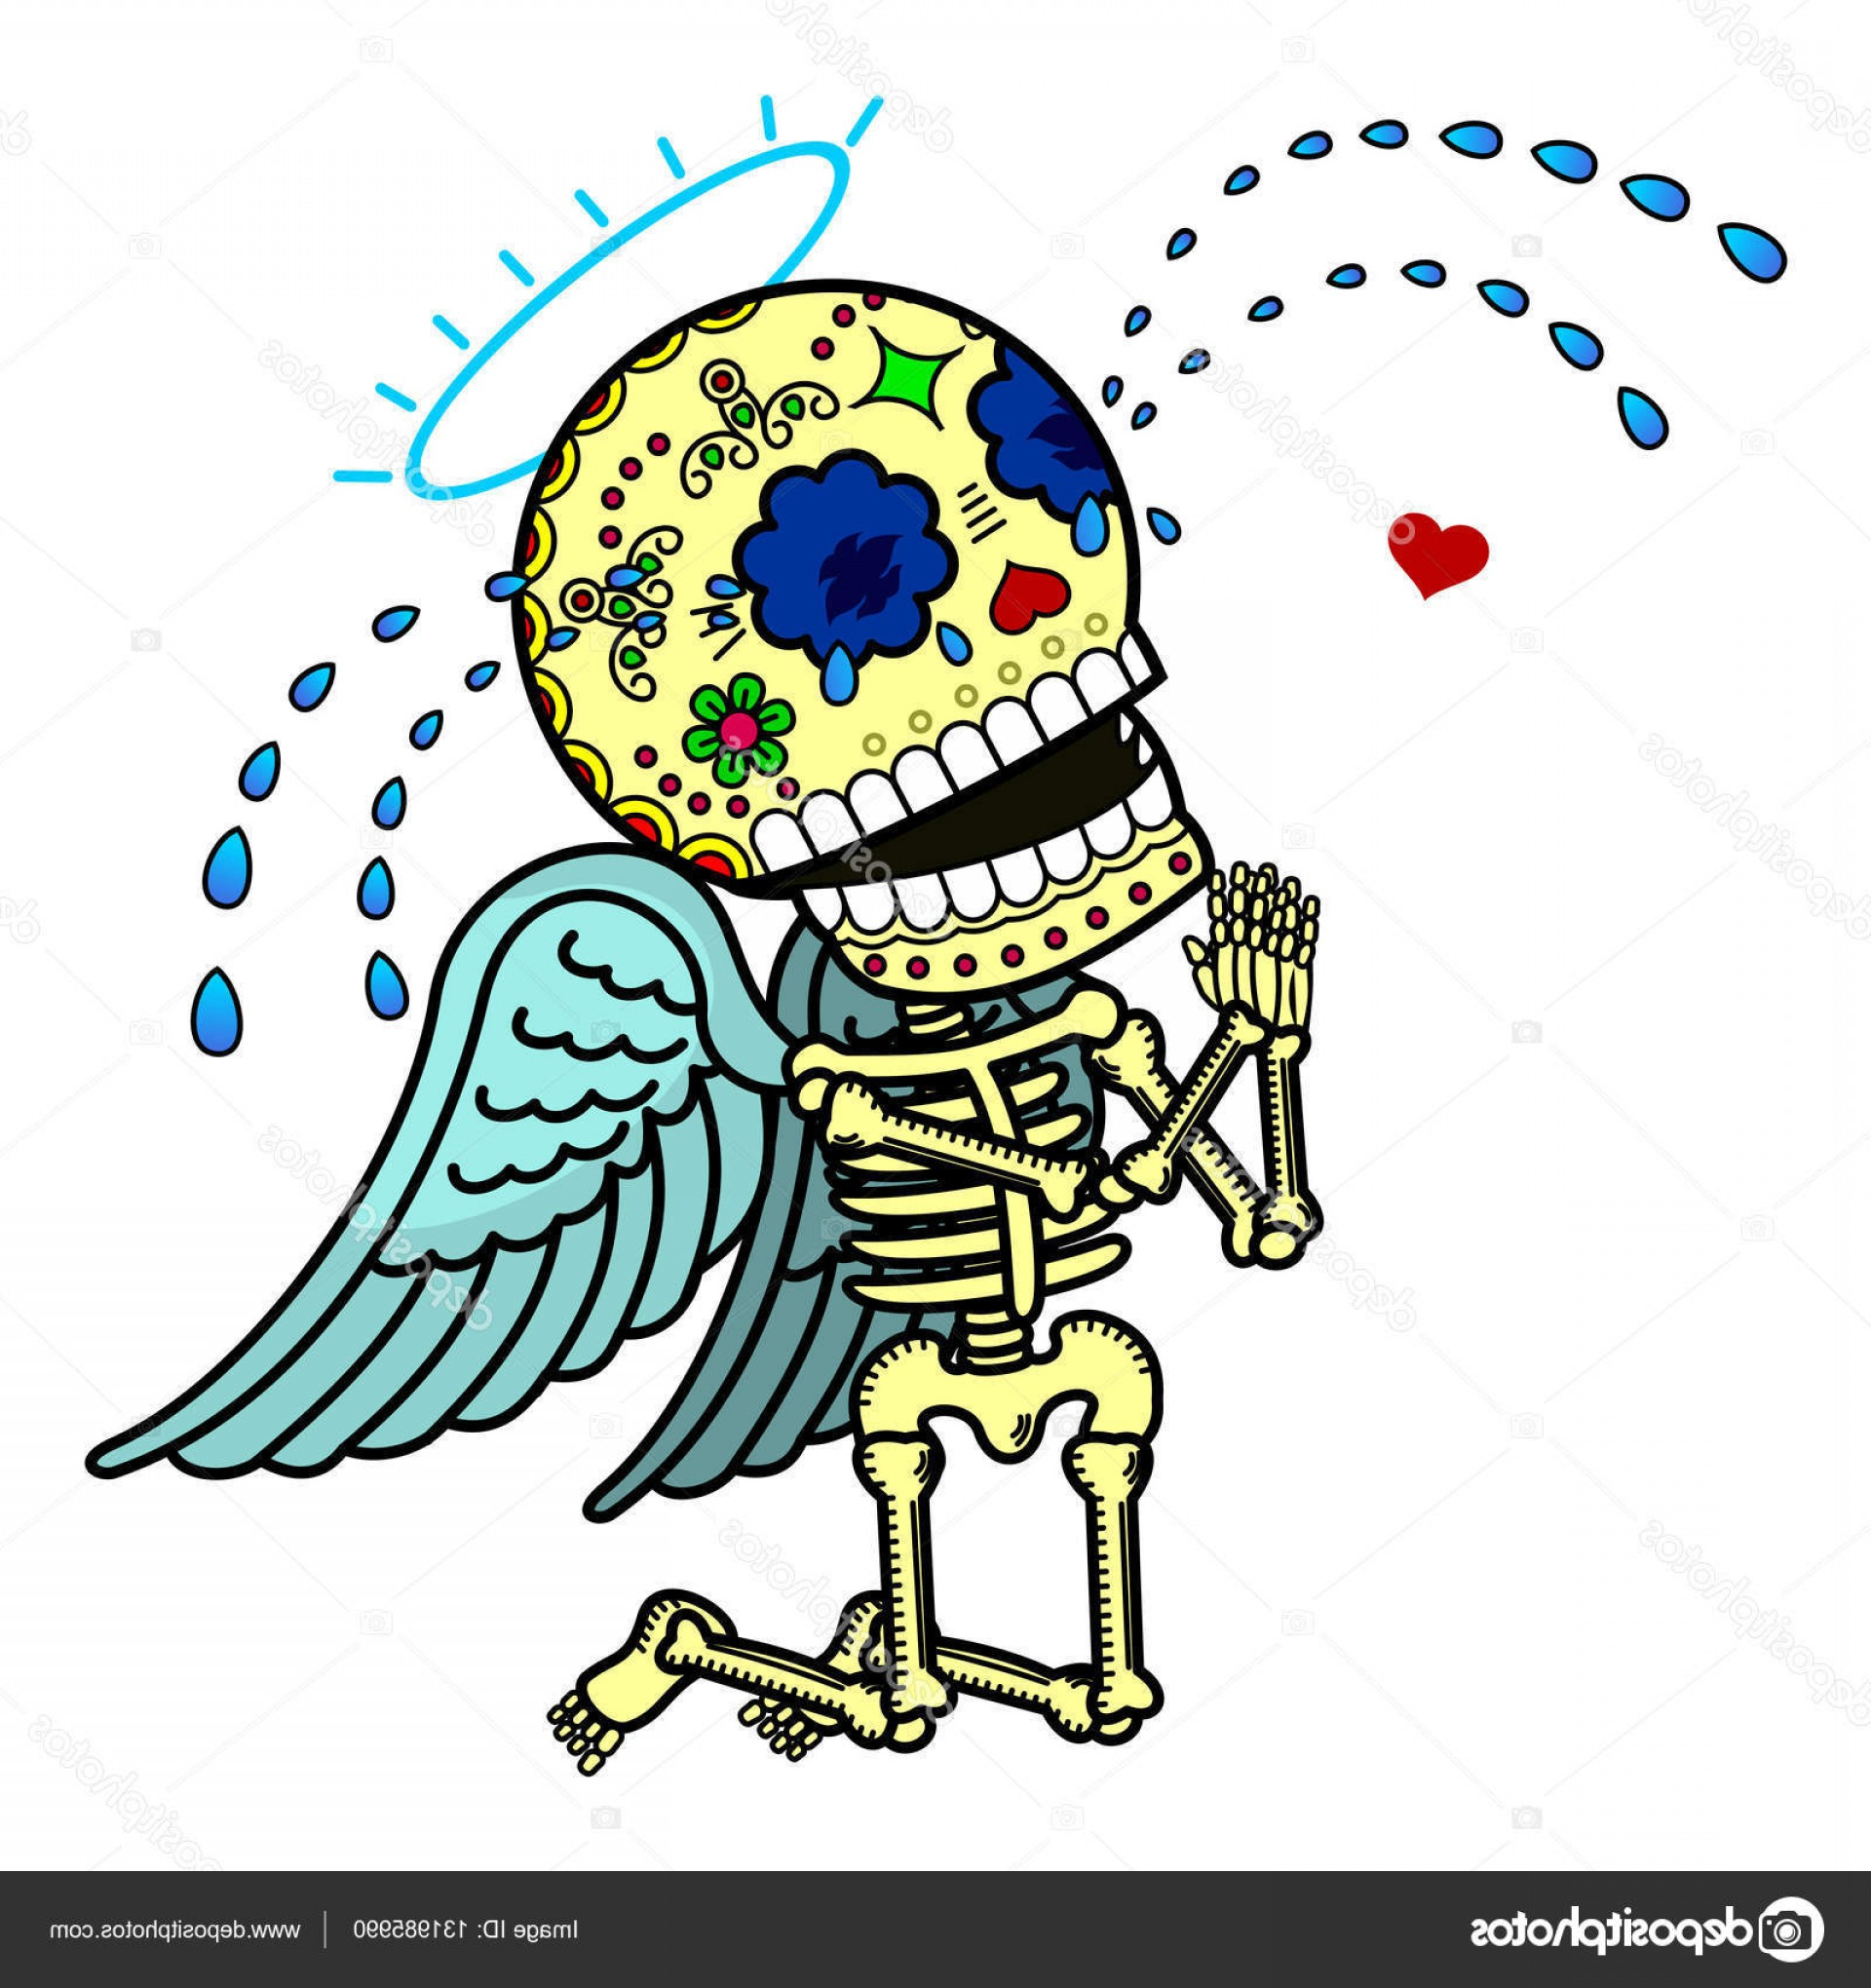 Skeletons In Love Vector: Stock Illustration Vector Illustration Of Skeletons